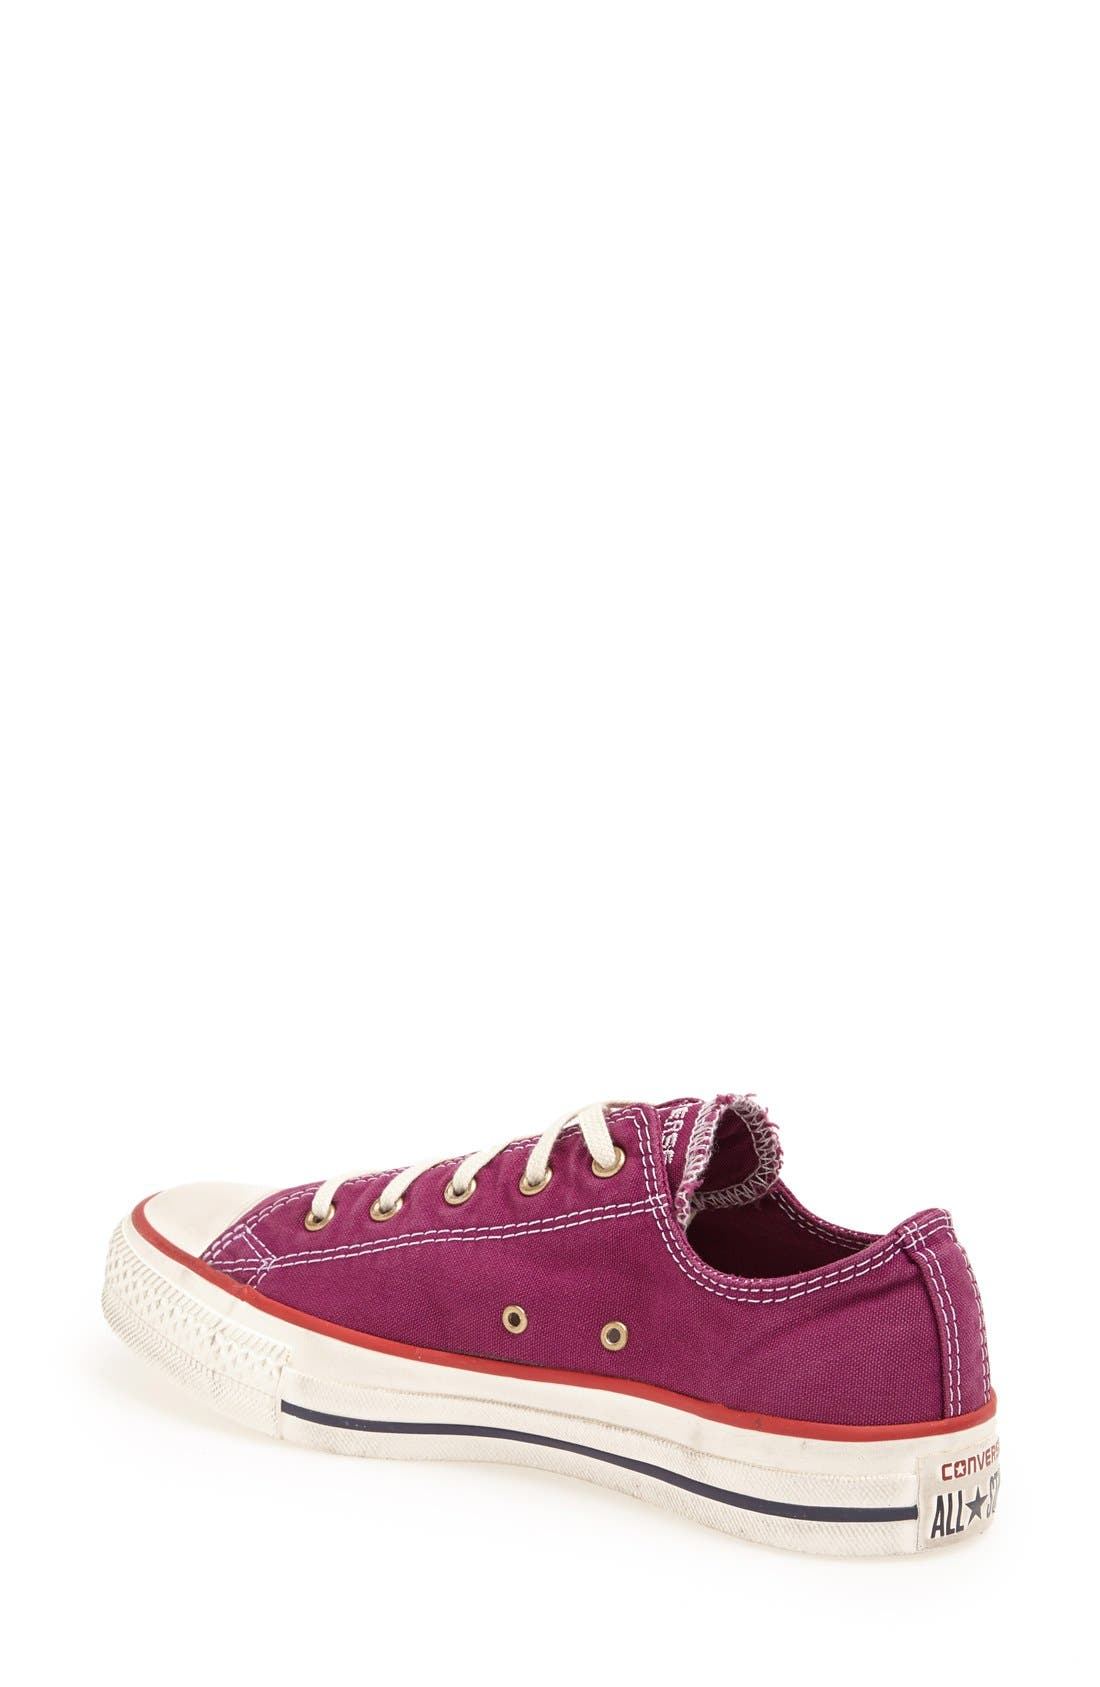 Alternate Image 2  - Converse Chuck Taylor® All Star® Washed Low Sneaker (Women)